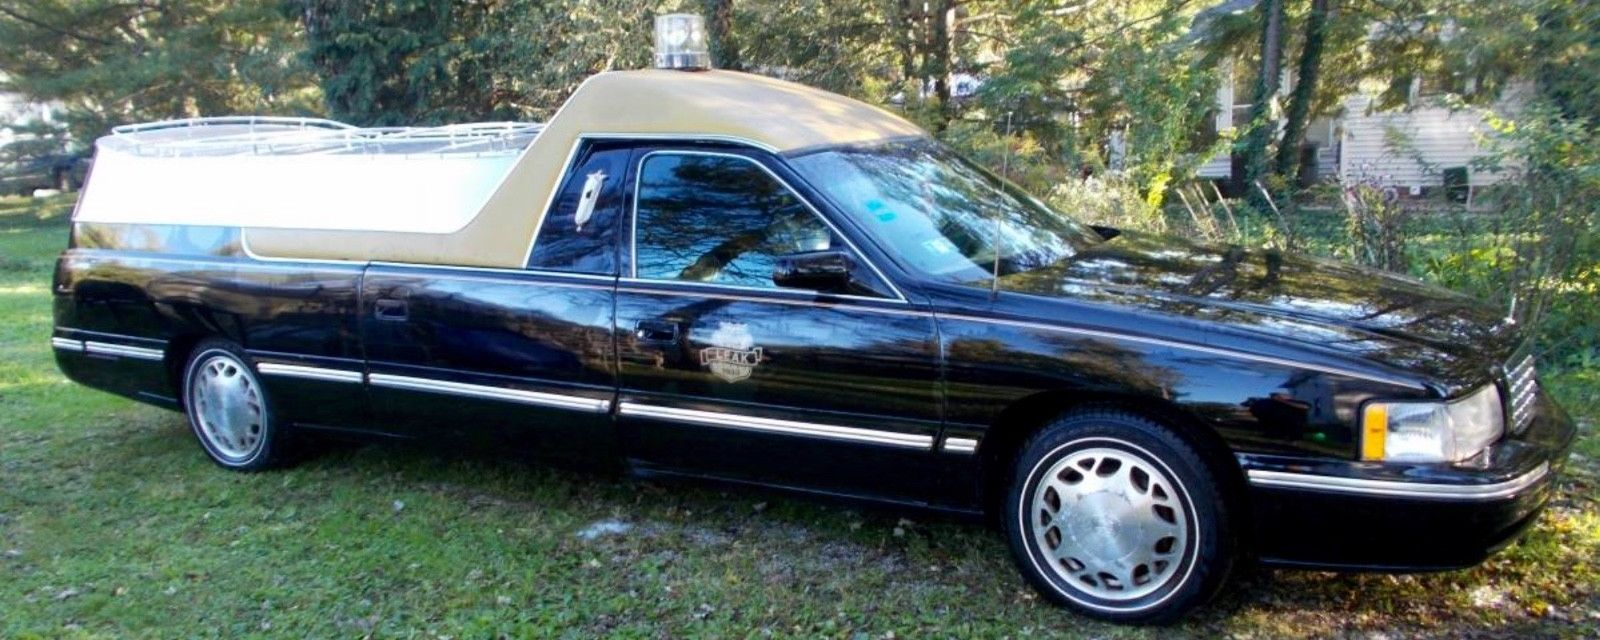 1999 Cadillac Brougham Hearsesflower Cars Pinterest Cadillac